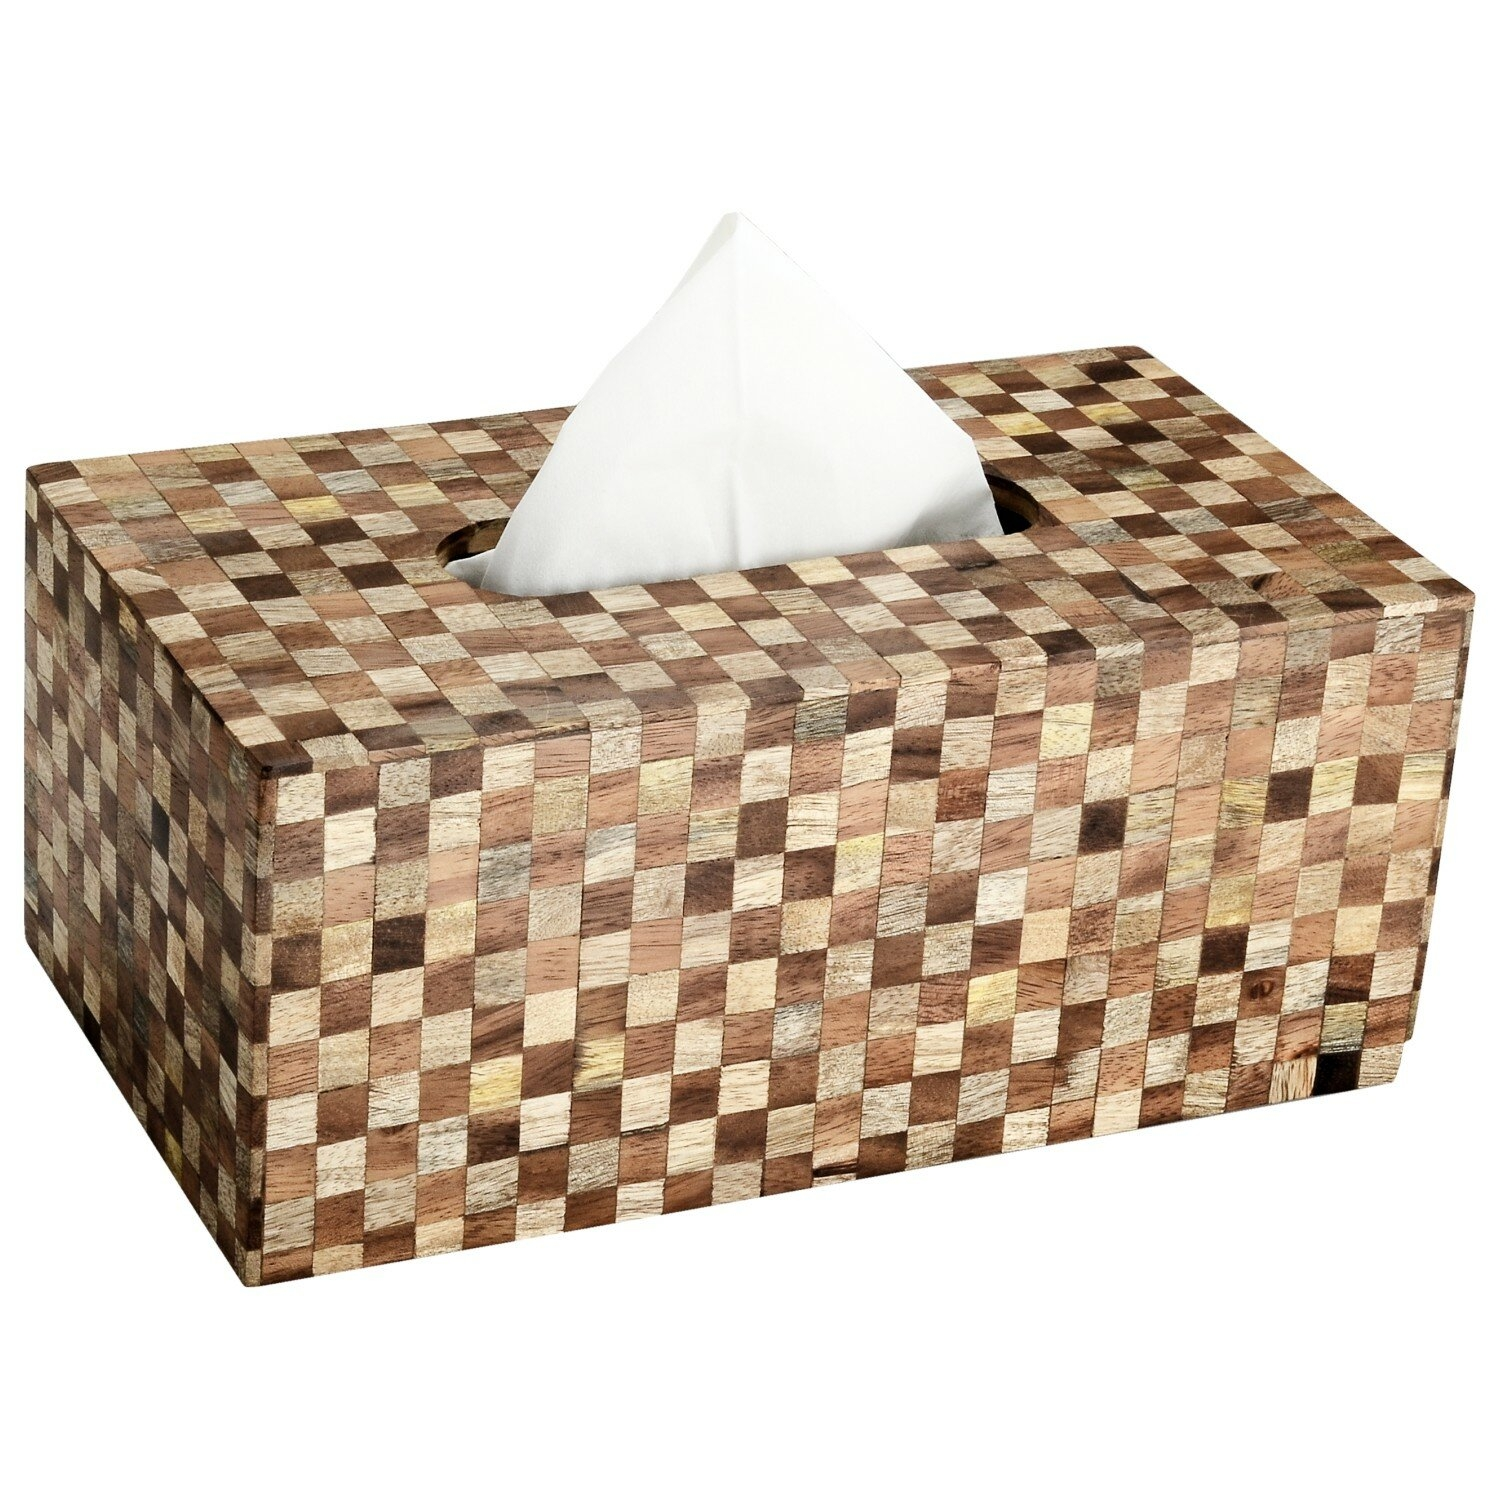 Rectangular Tissue Box Cover You Ll Love In 2021 Visualhunt